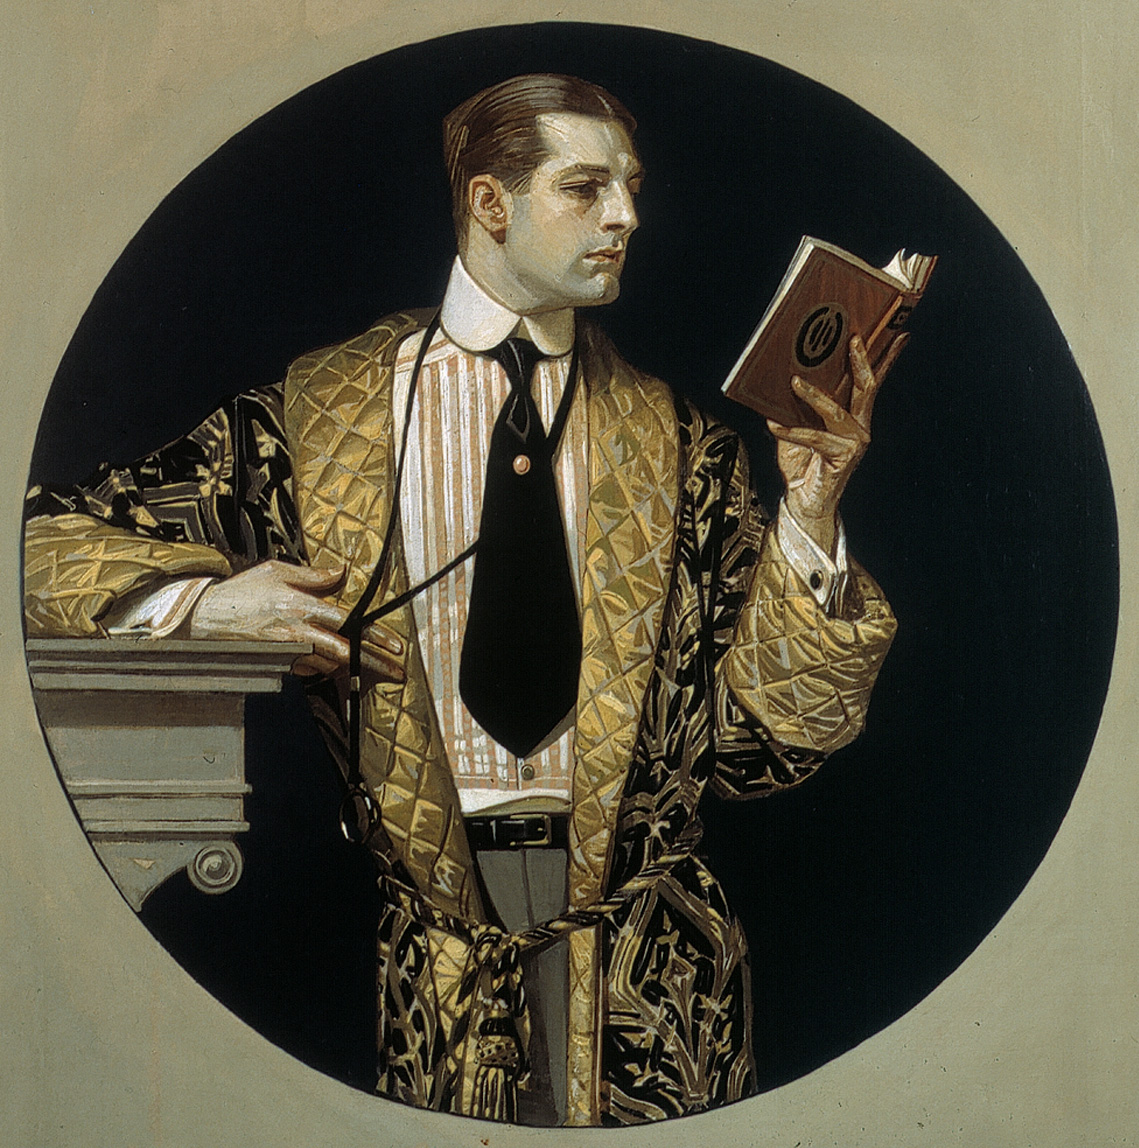 J.C. Leyendecker_Man Reading in Circle_HR